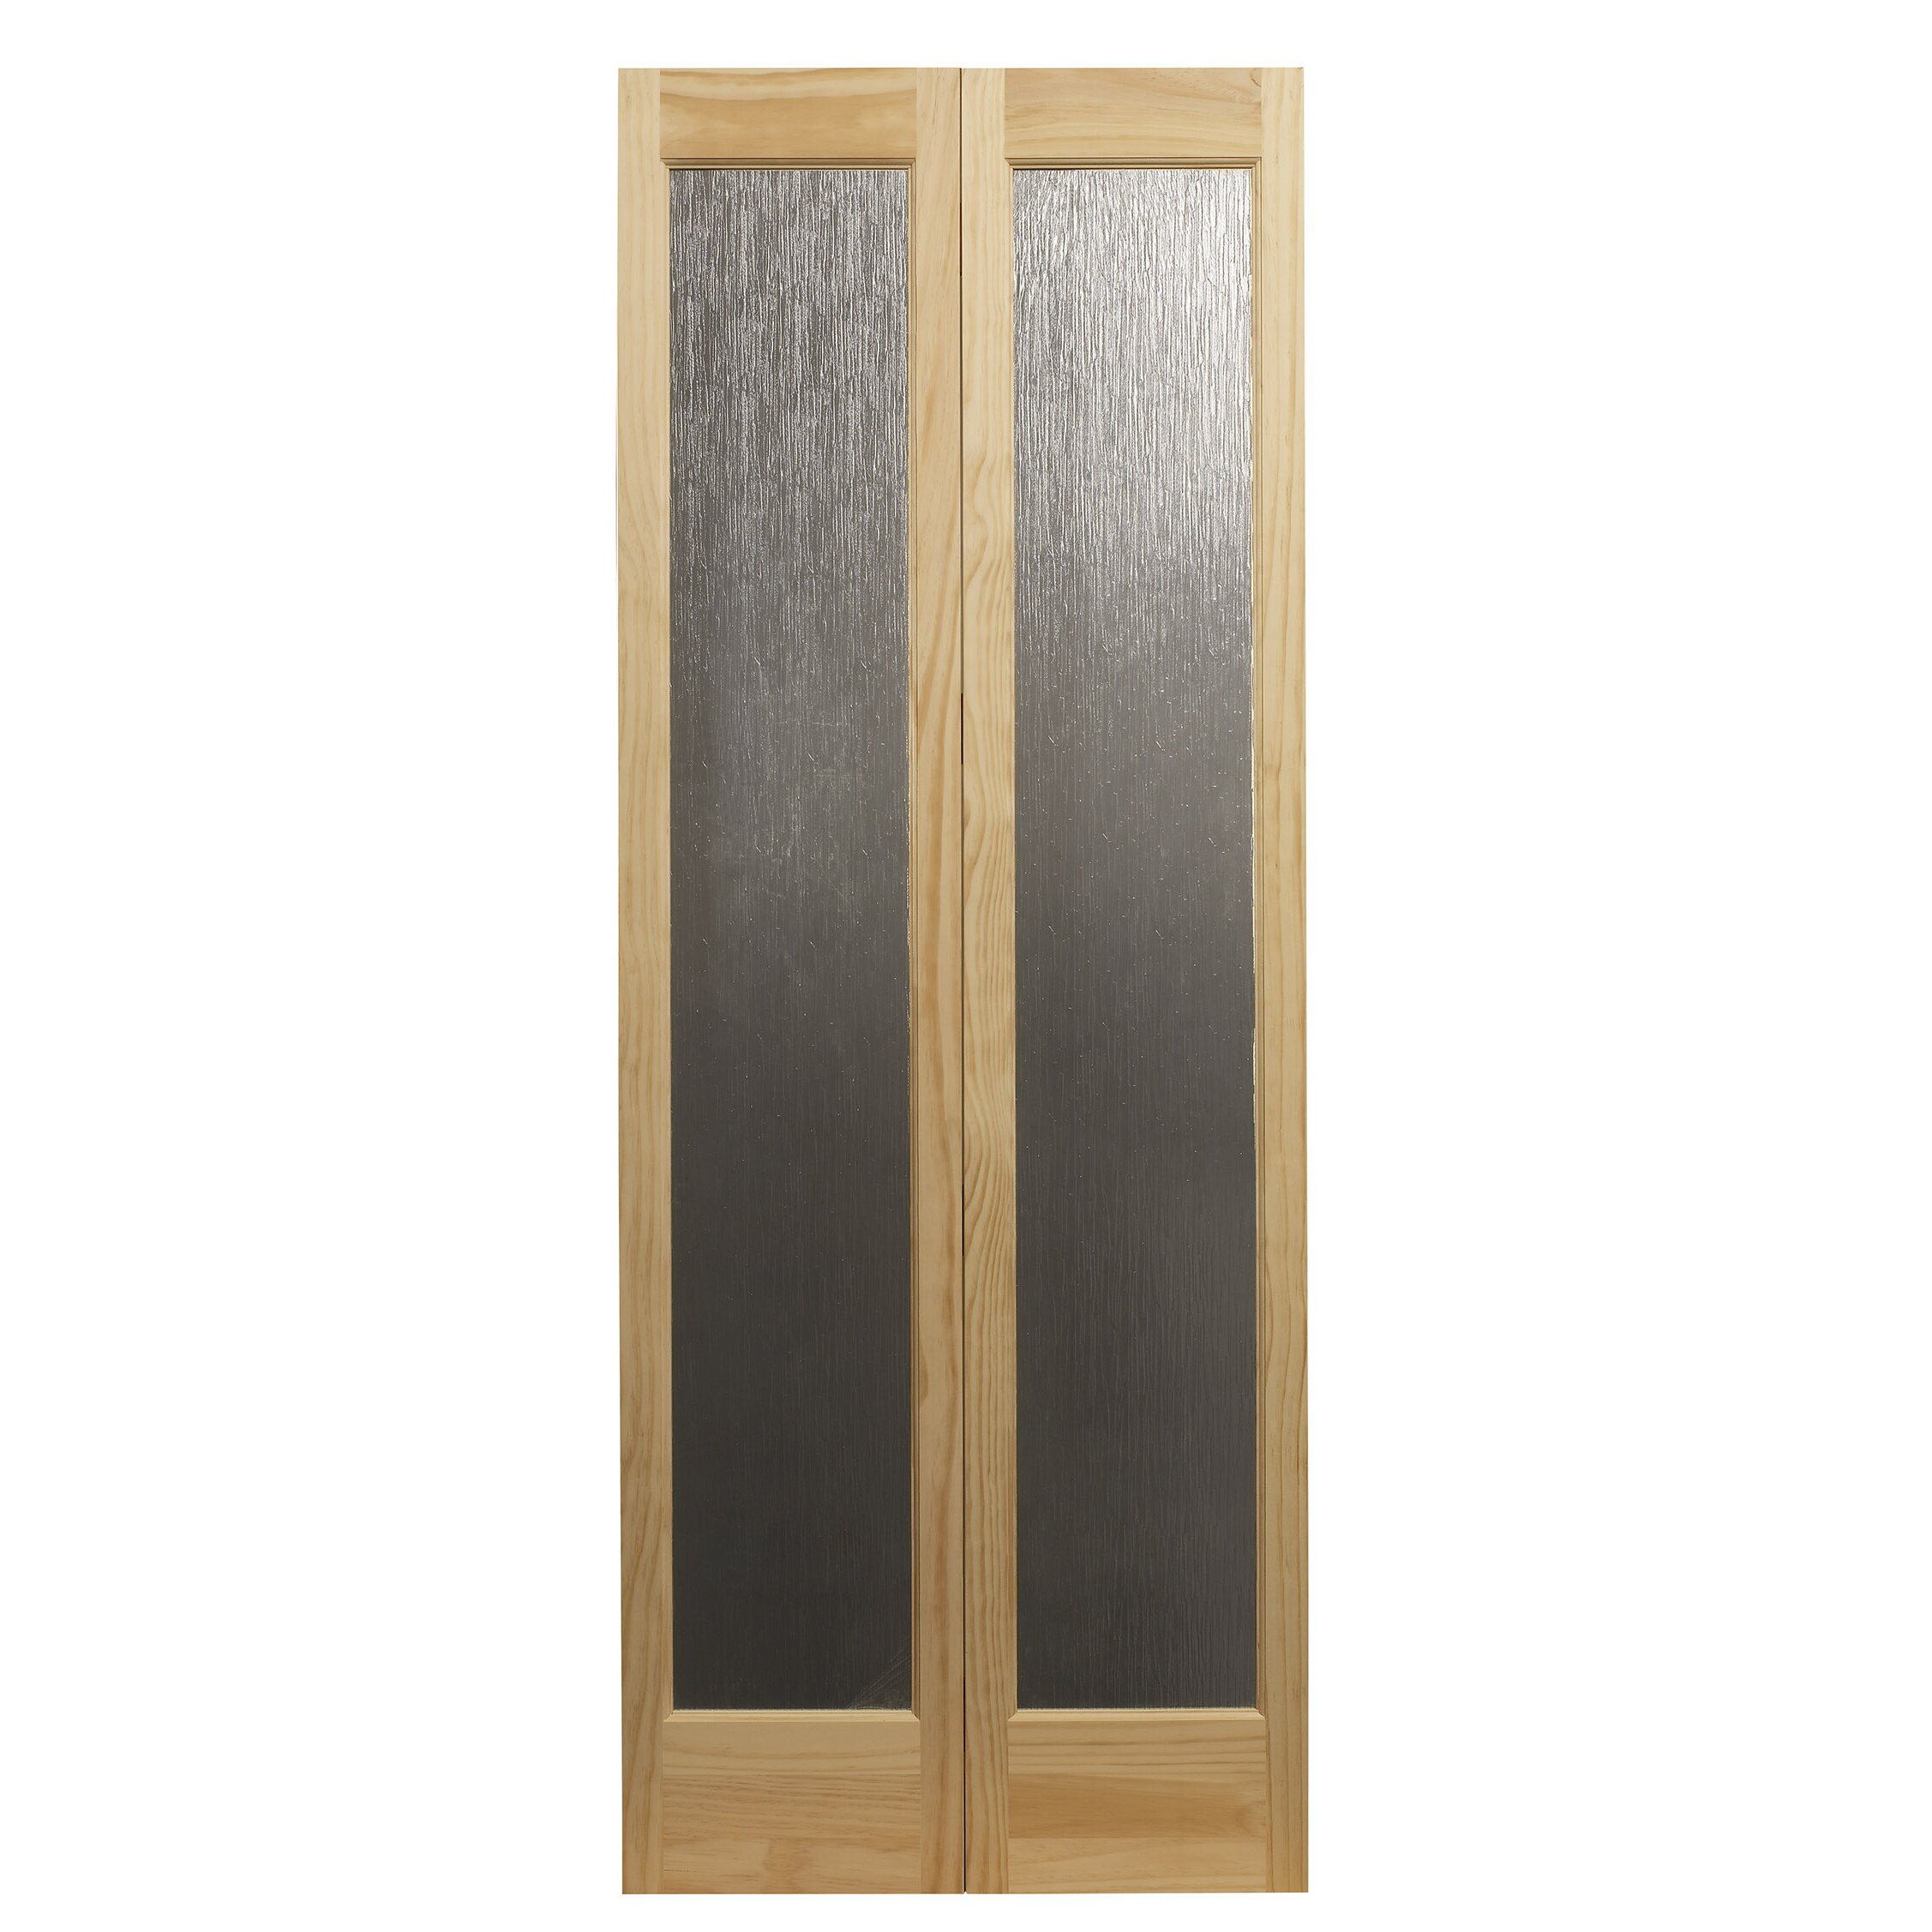 Ltl bi fold doors wood unfinished bi fold interior door - 30 x 80 exterior door with pet door ...